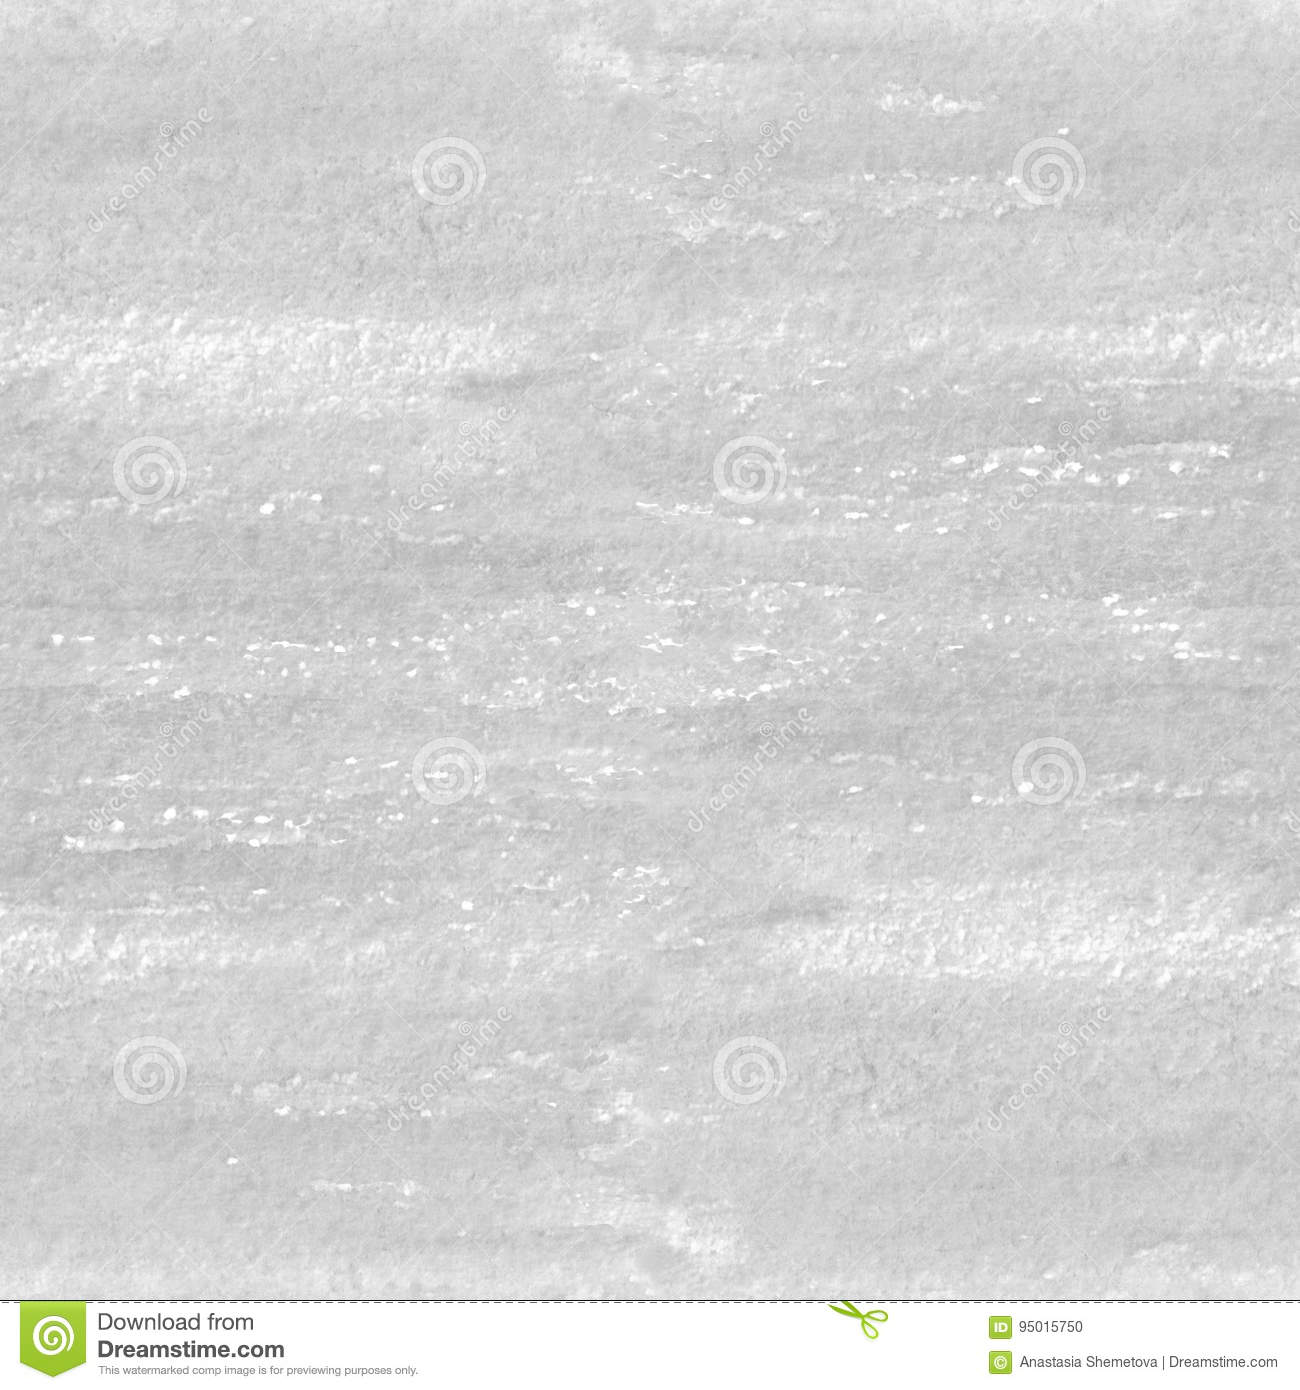 Hand drawn watercolor gray texture seamless pattern